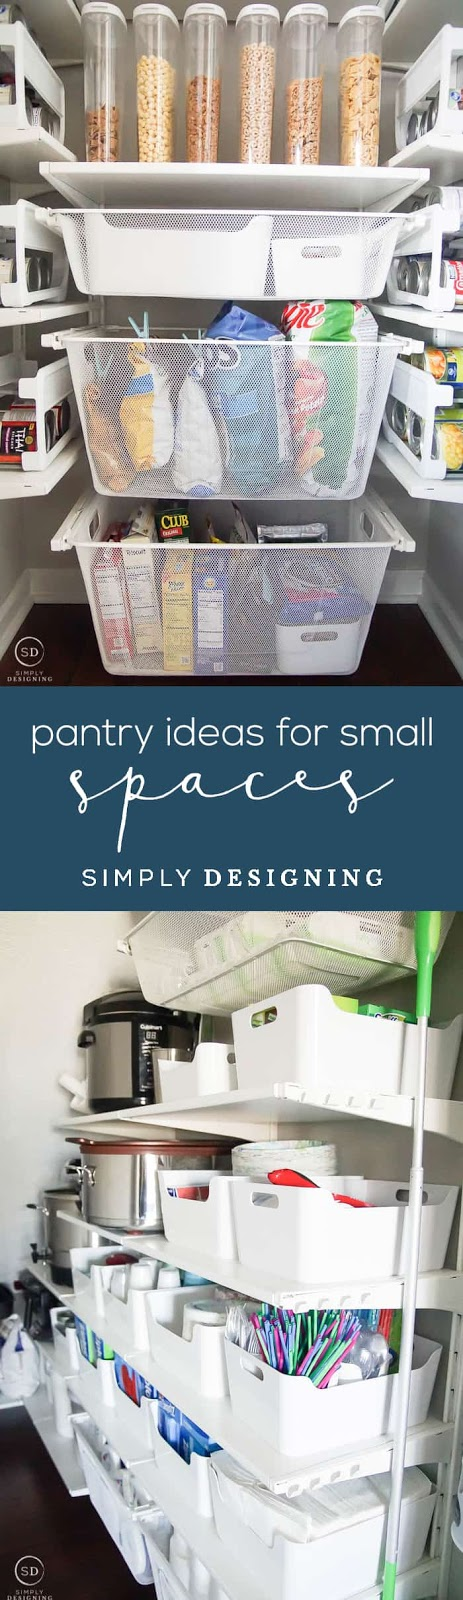 https://simplydesigning.net/organize-a-closet-under-the-stairs-and-diy-pantry-organization-ideas/